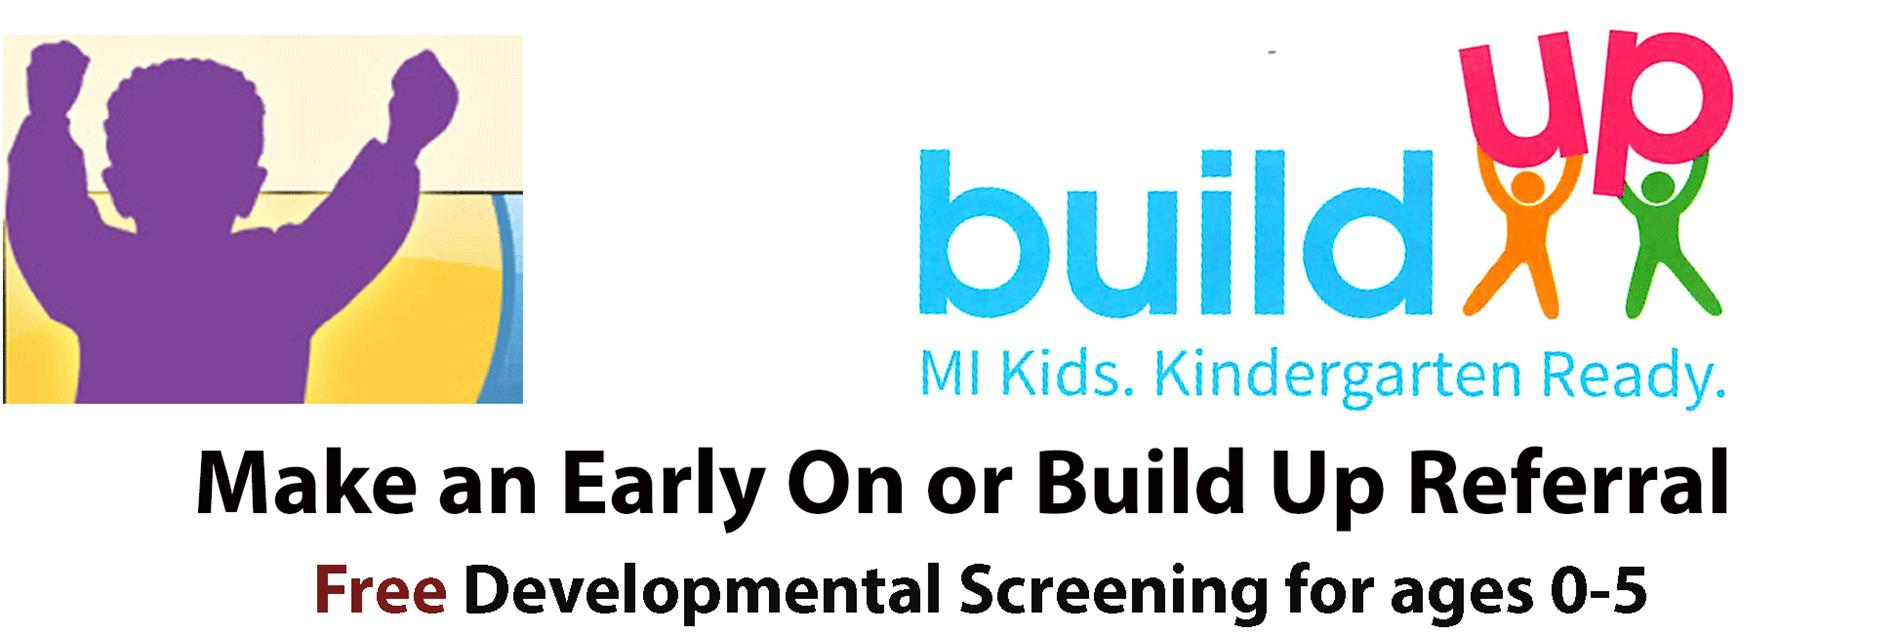 Free Developmental Screening for age 0-5